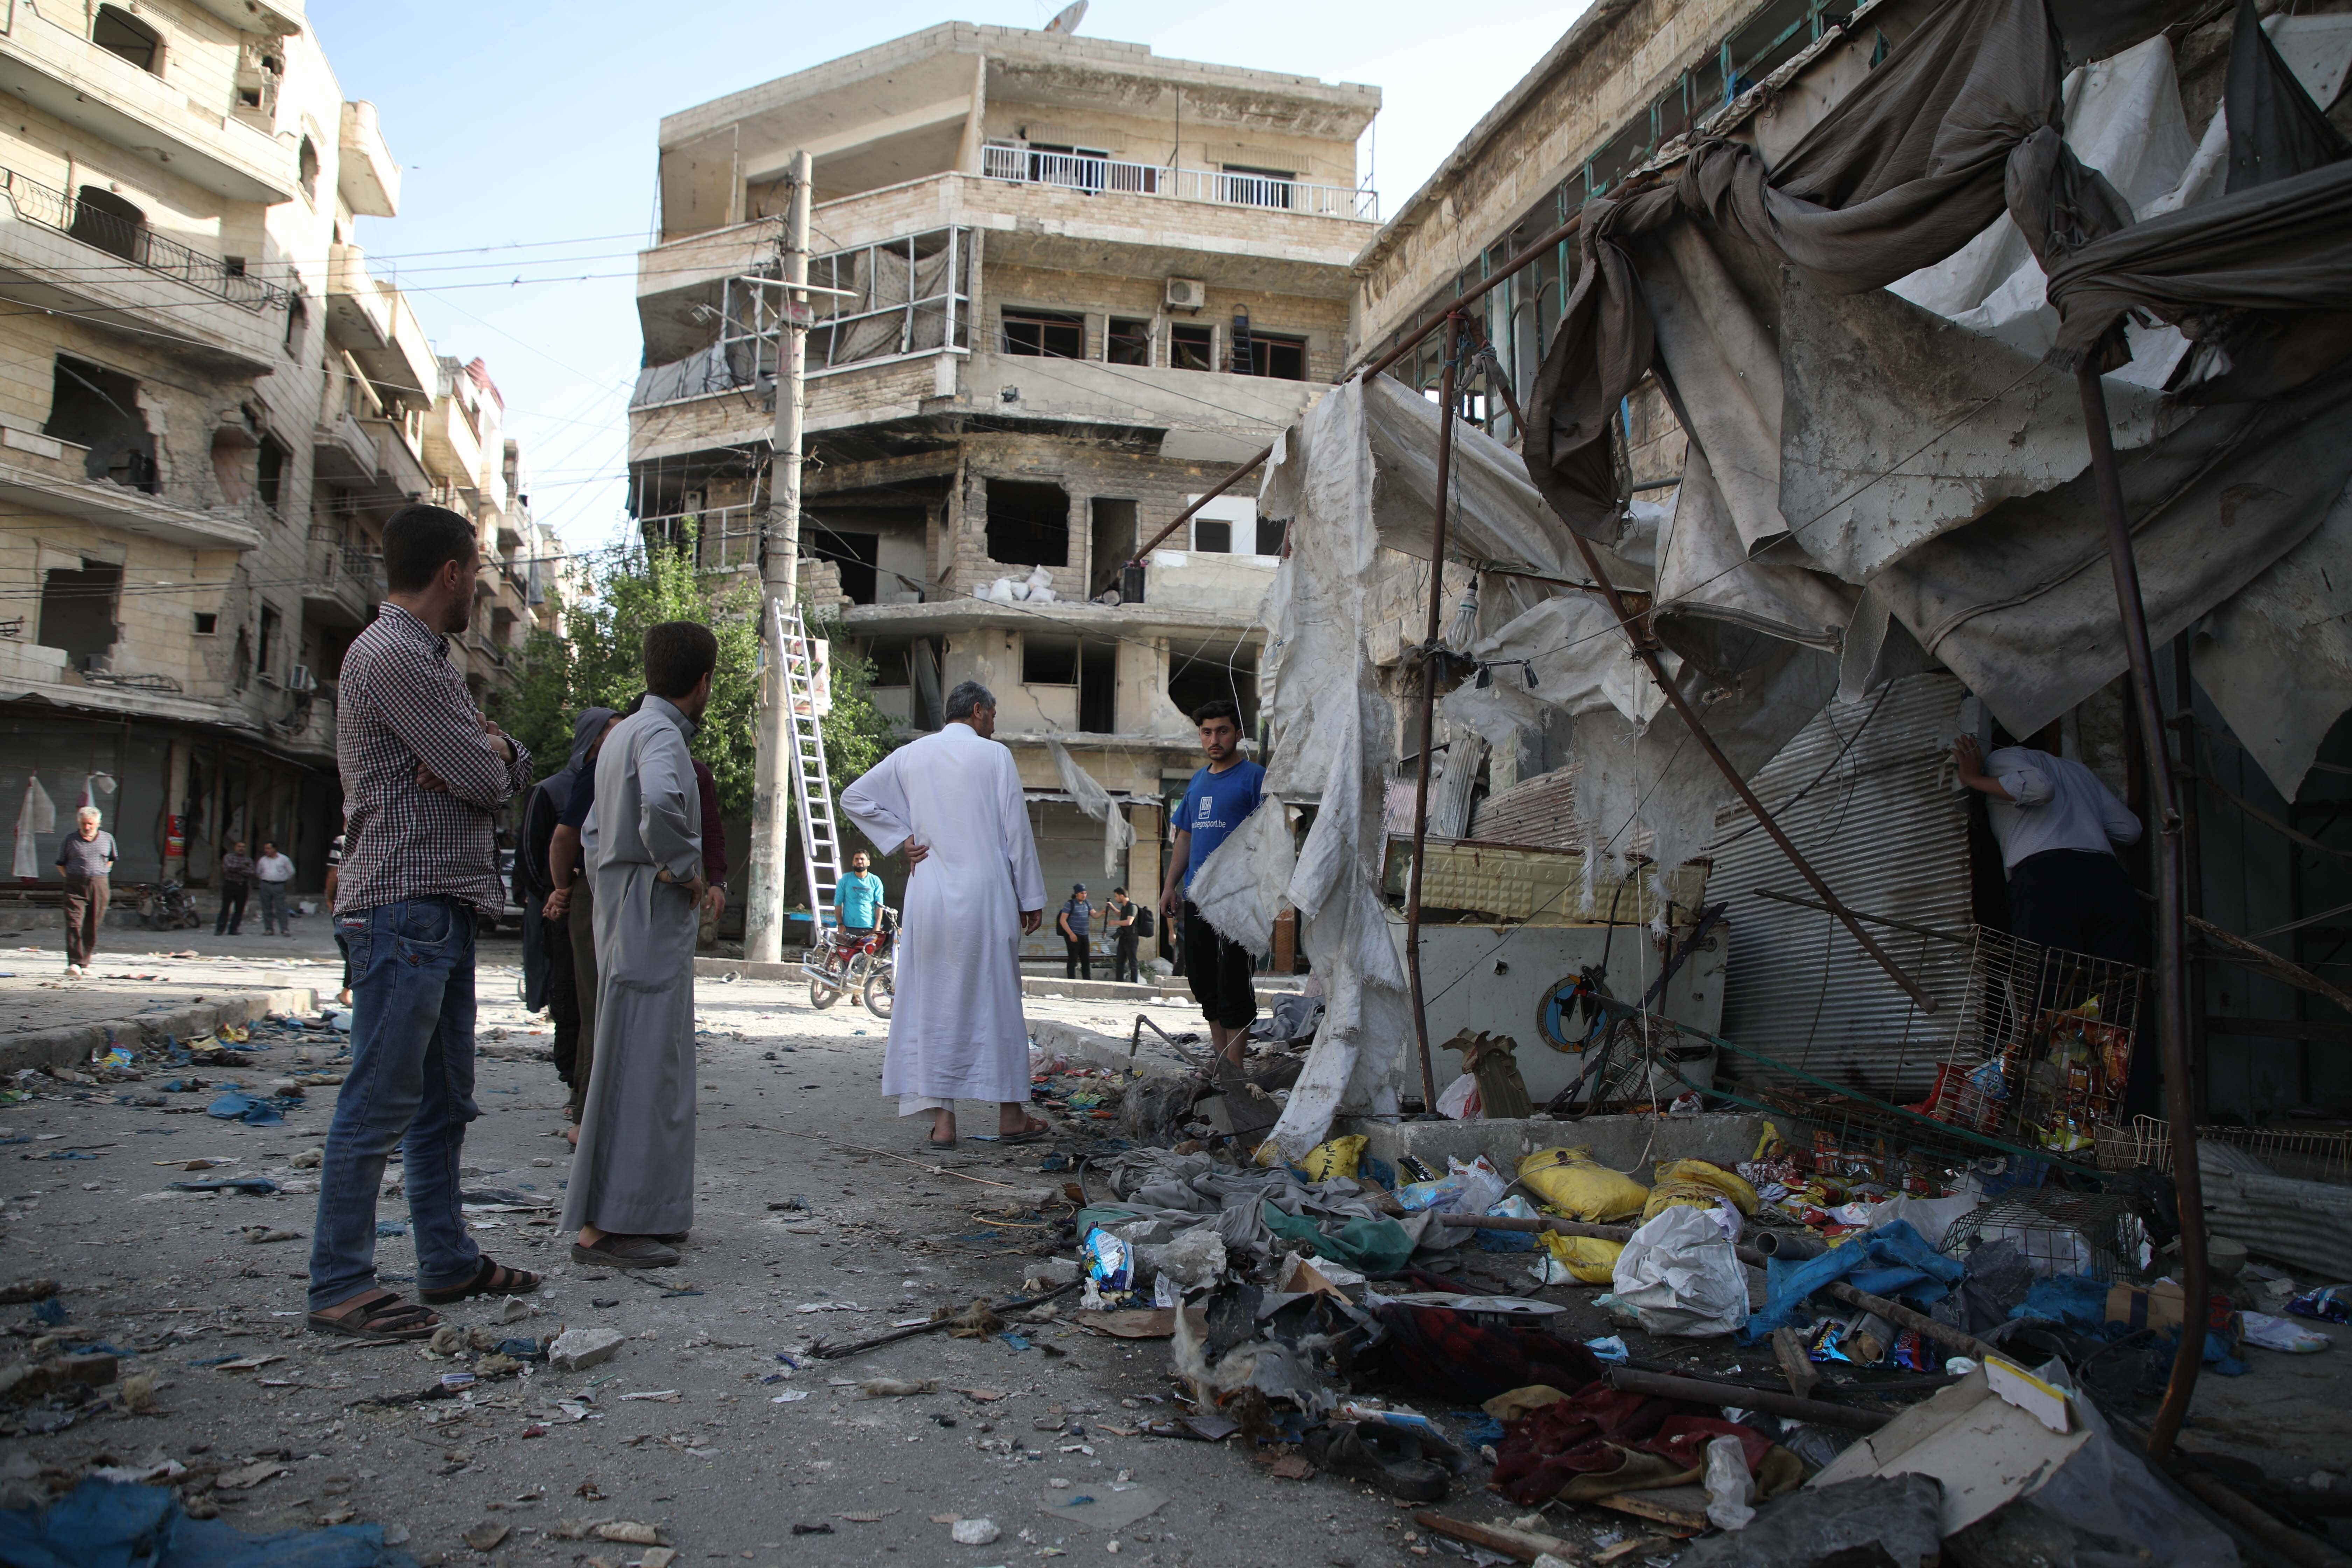 People gather at the site of an air strike on a market in the town of Maarat al-Numan on May 21, 2019. - At least 12 people were killed and 18 others wounded in overnight strikes on the Idlib  town of Maarat al-Numan, the Britain-based Syrian Observatory for Human Rights said. (Photo by Aaref WATAD / AFP)        (Photo credit should read AAREF WATAD/AFP/Getty Images)